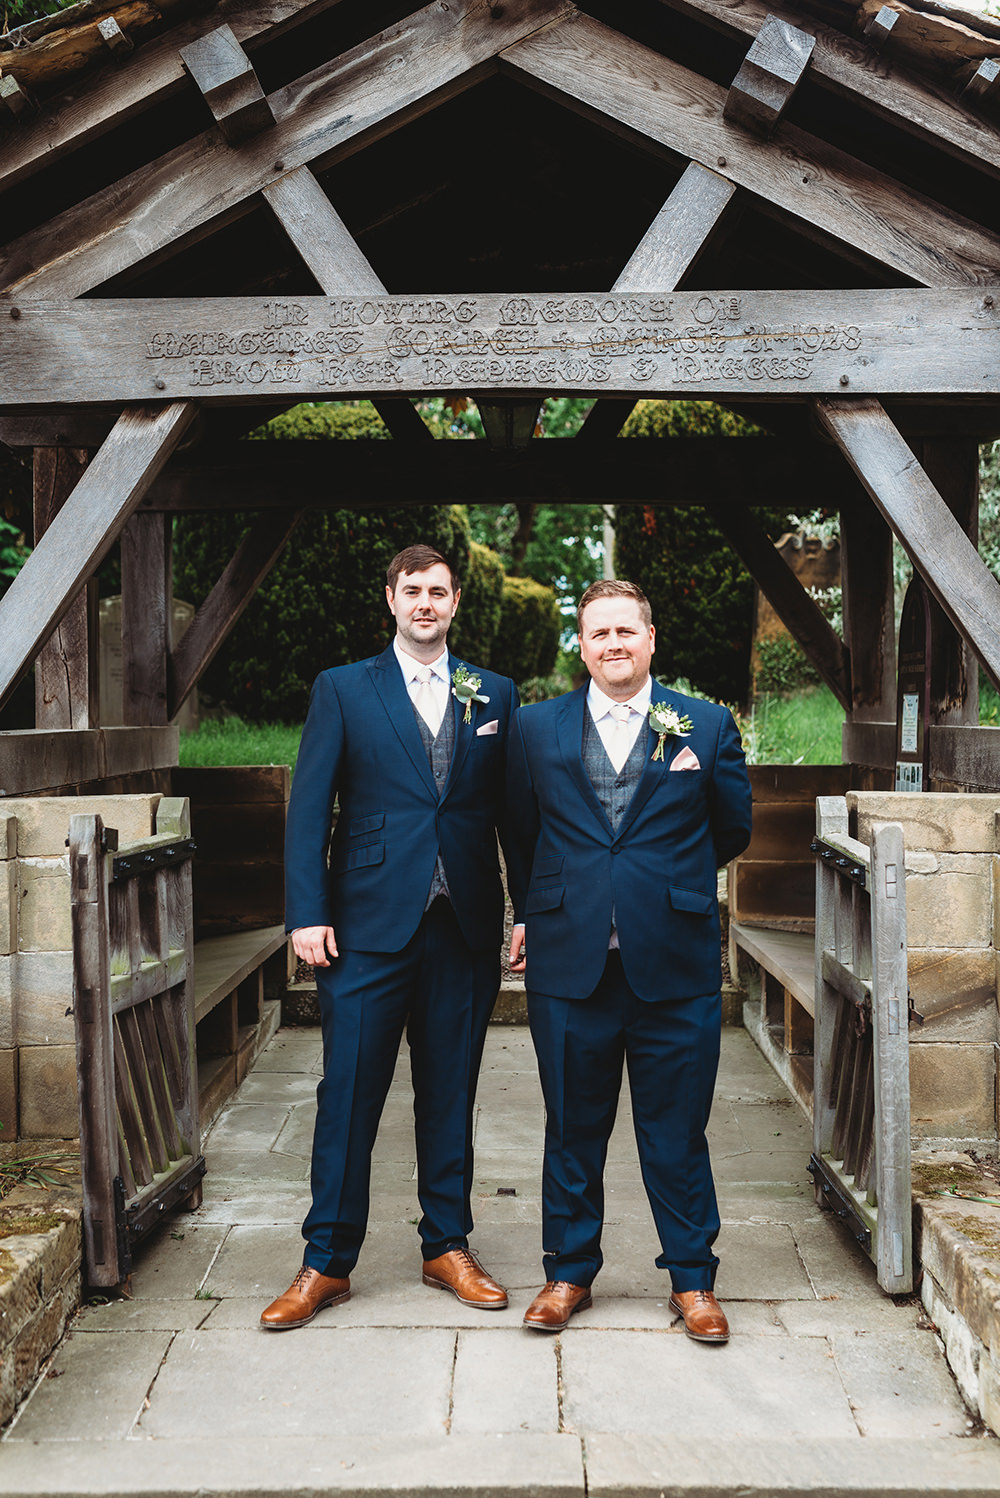 Groom Groomsmen Suit Grey Tweed Waistcoat Blue Tan Shoes Whinstone View Wedding Emma Adamson Photography